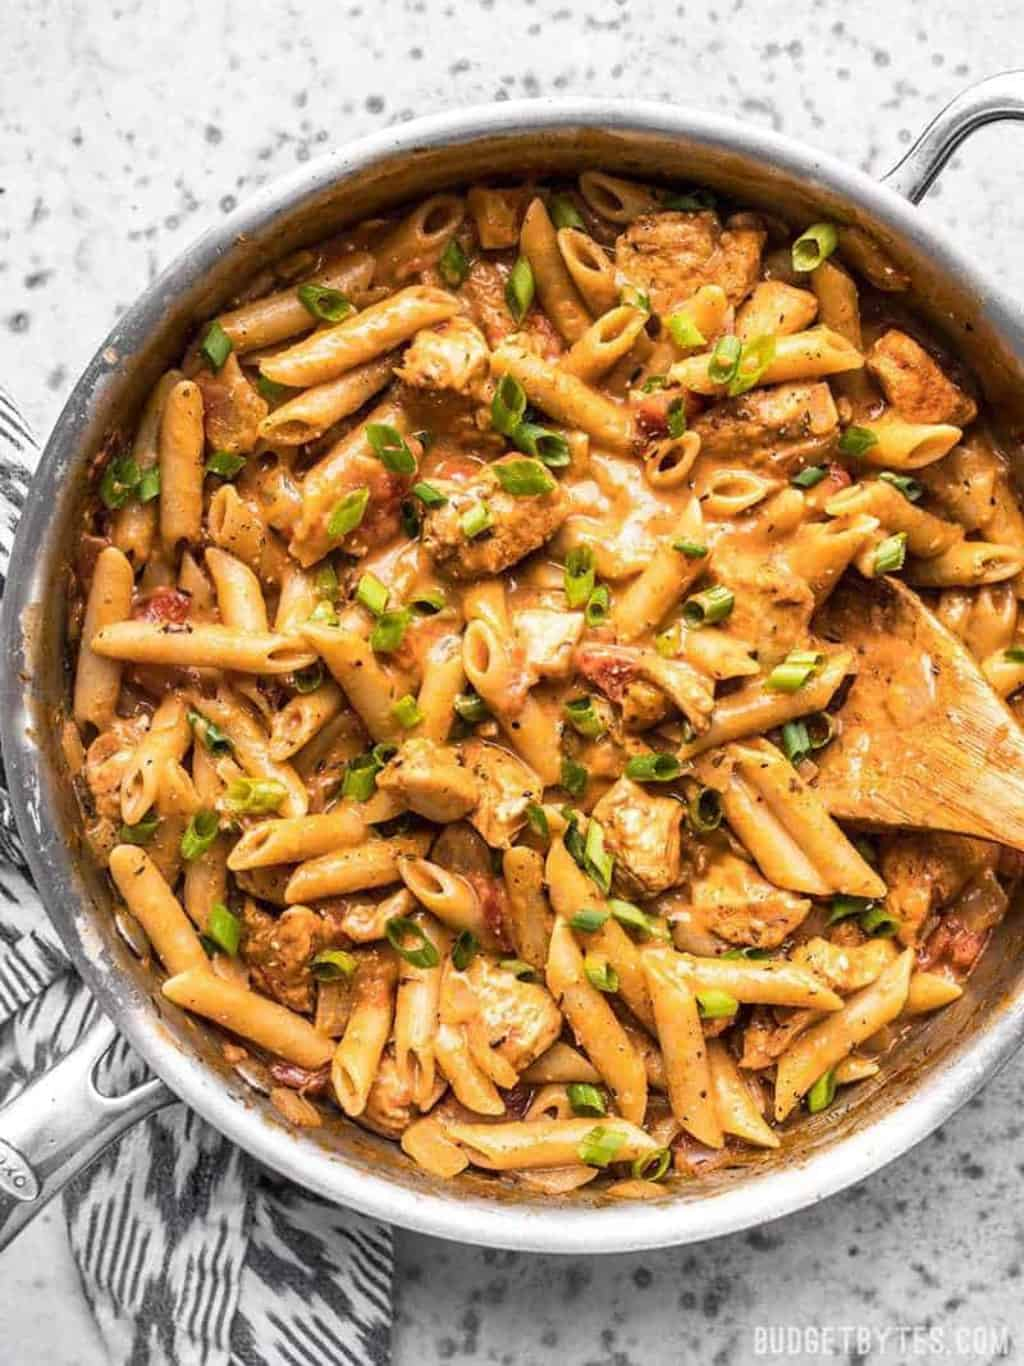 Flat lay of a spicy pasta dinner in a pan